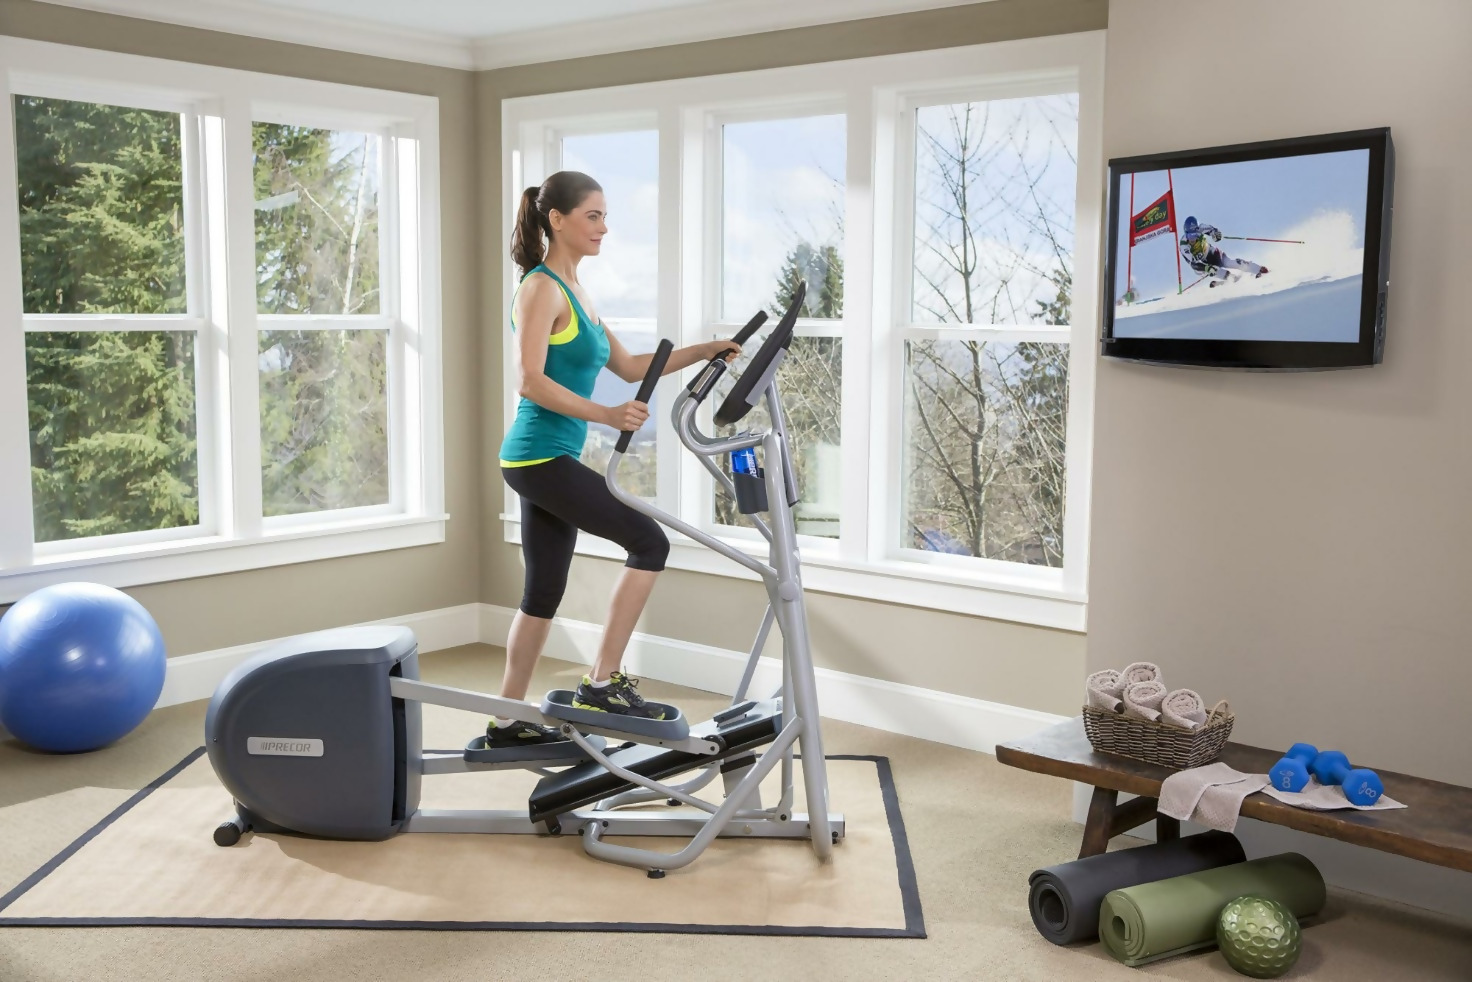 Choosing A Home Exercise Program